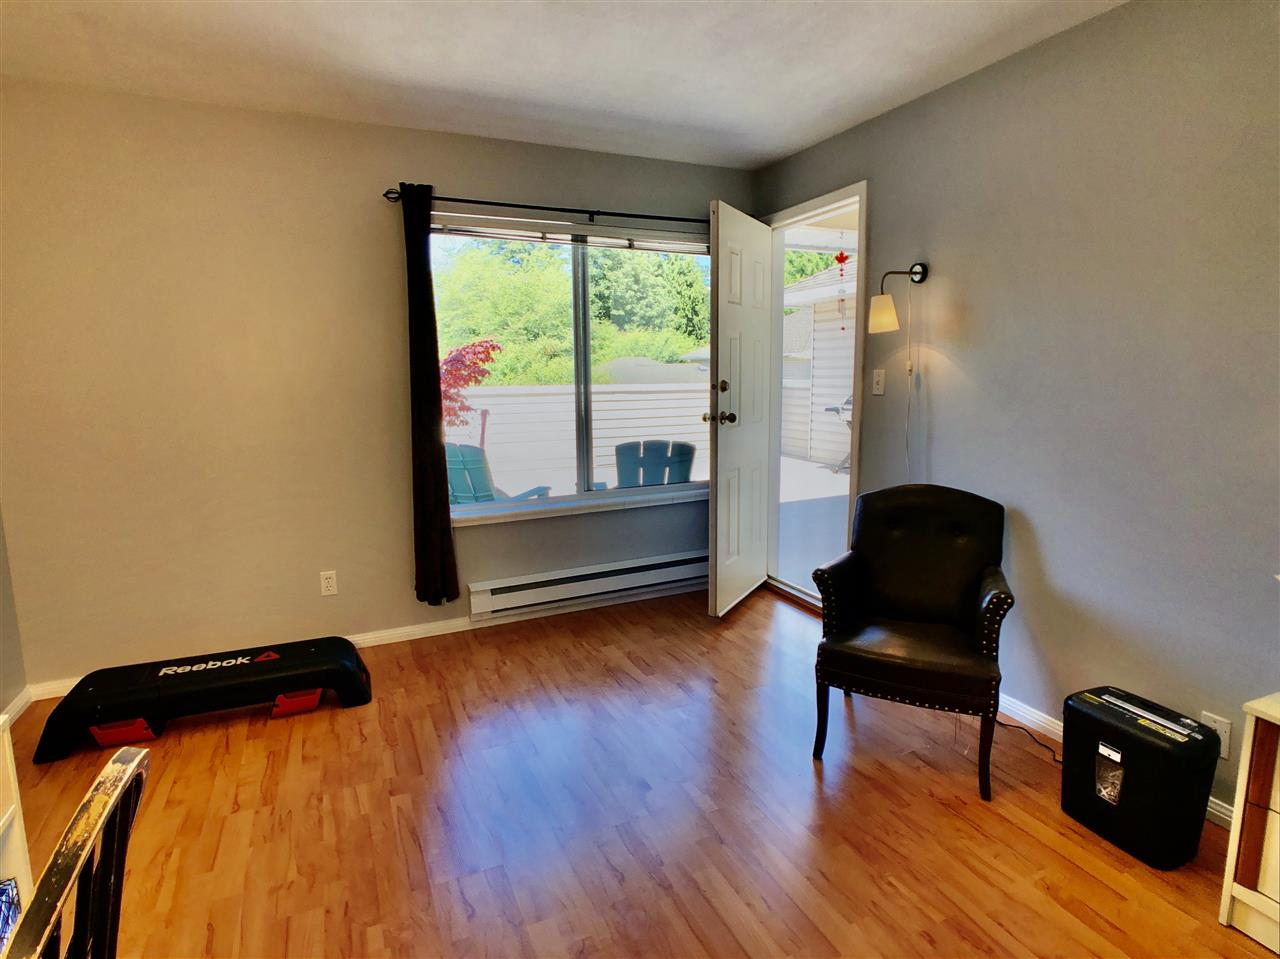 207 9310 KING GEORGE BOULEVARD - Bear Creek Green Timbers Townhouse for sale, 3 Bedrooms (R2481092) - #13